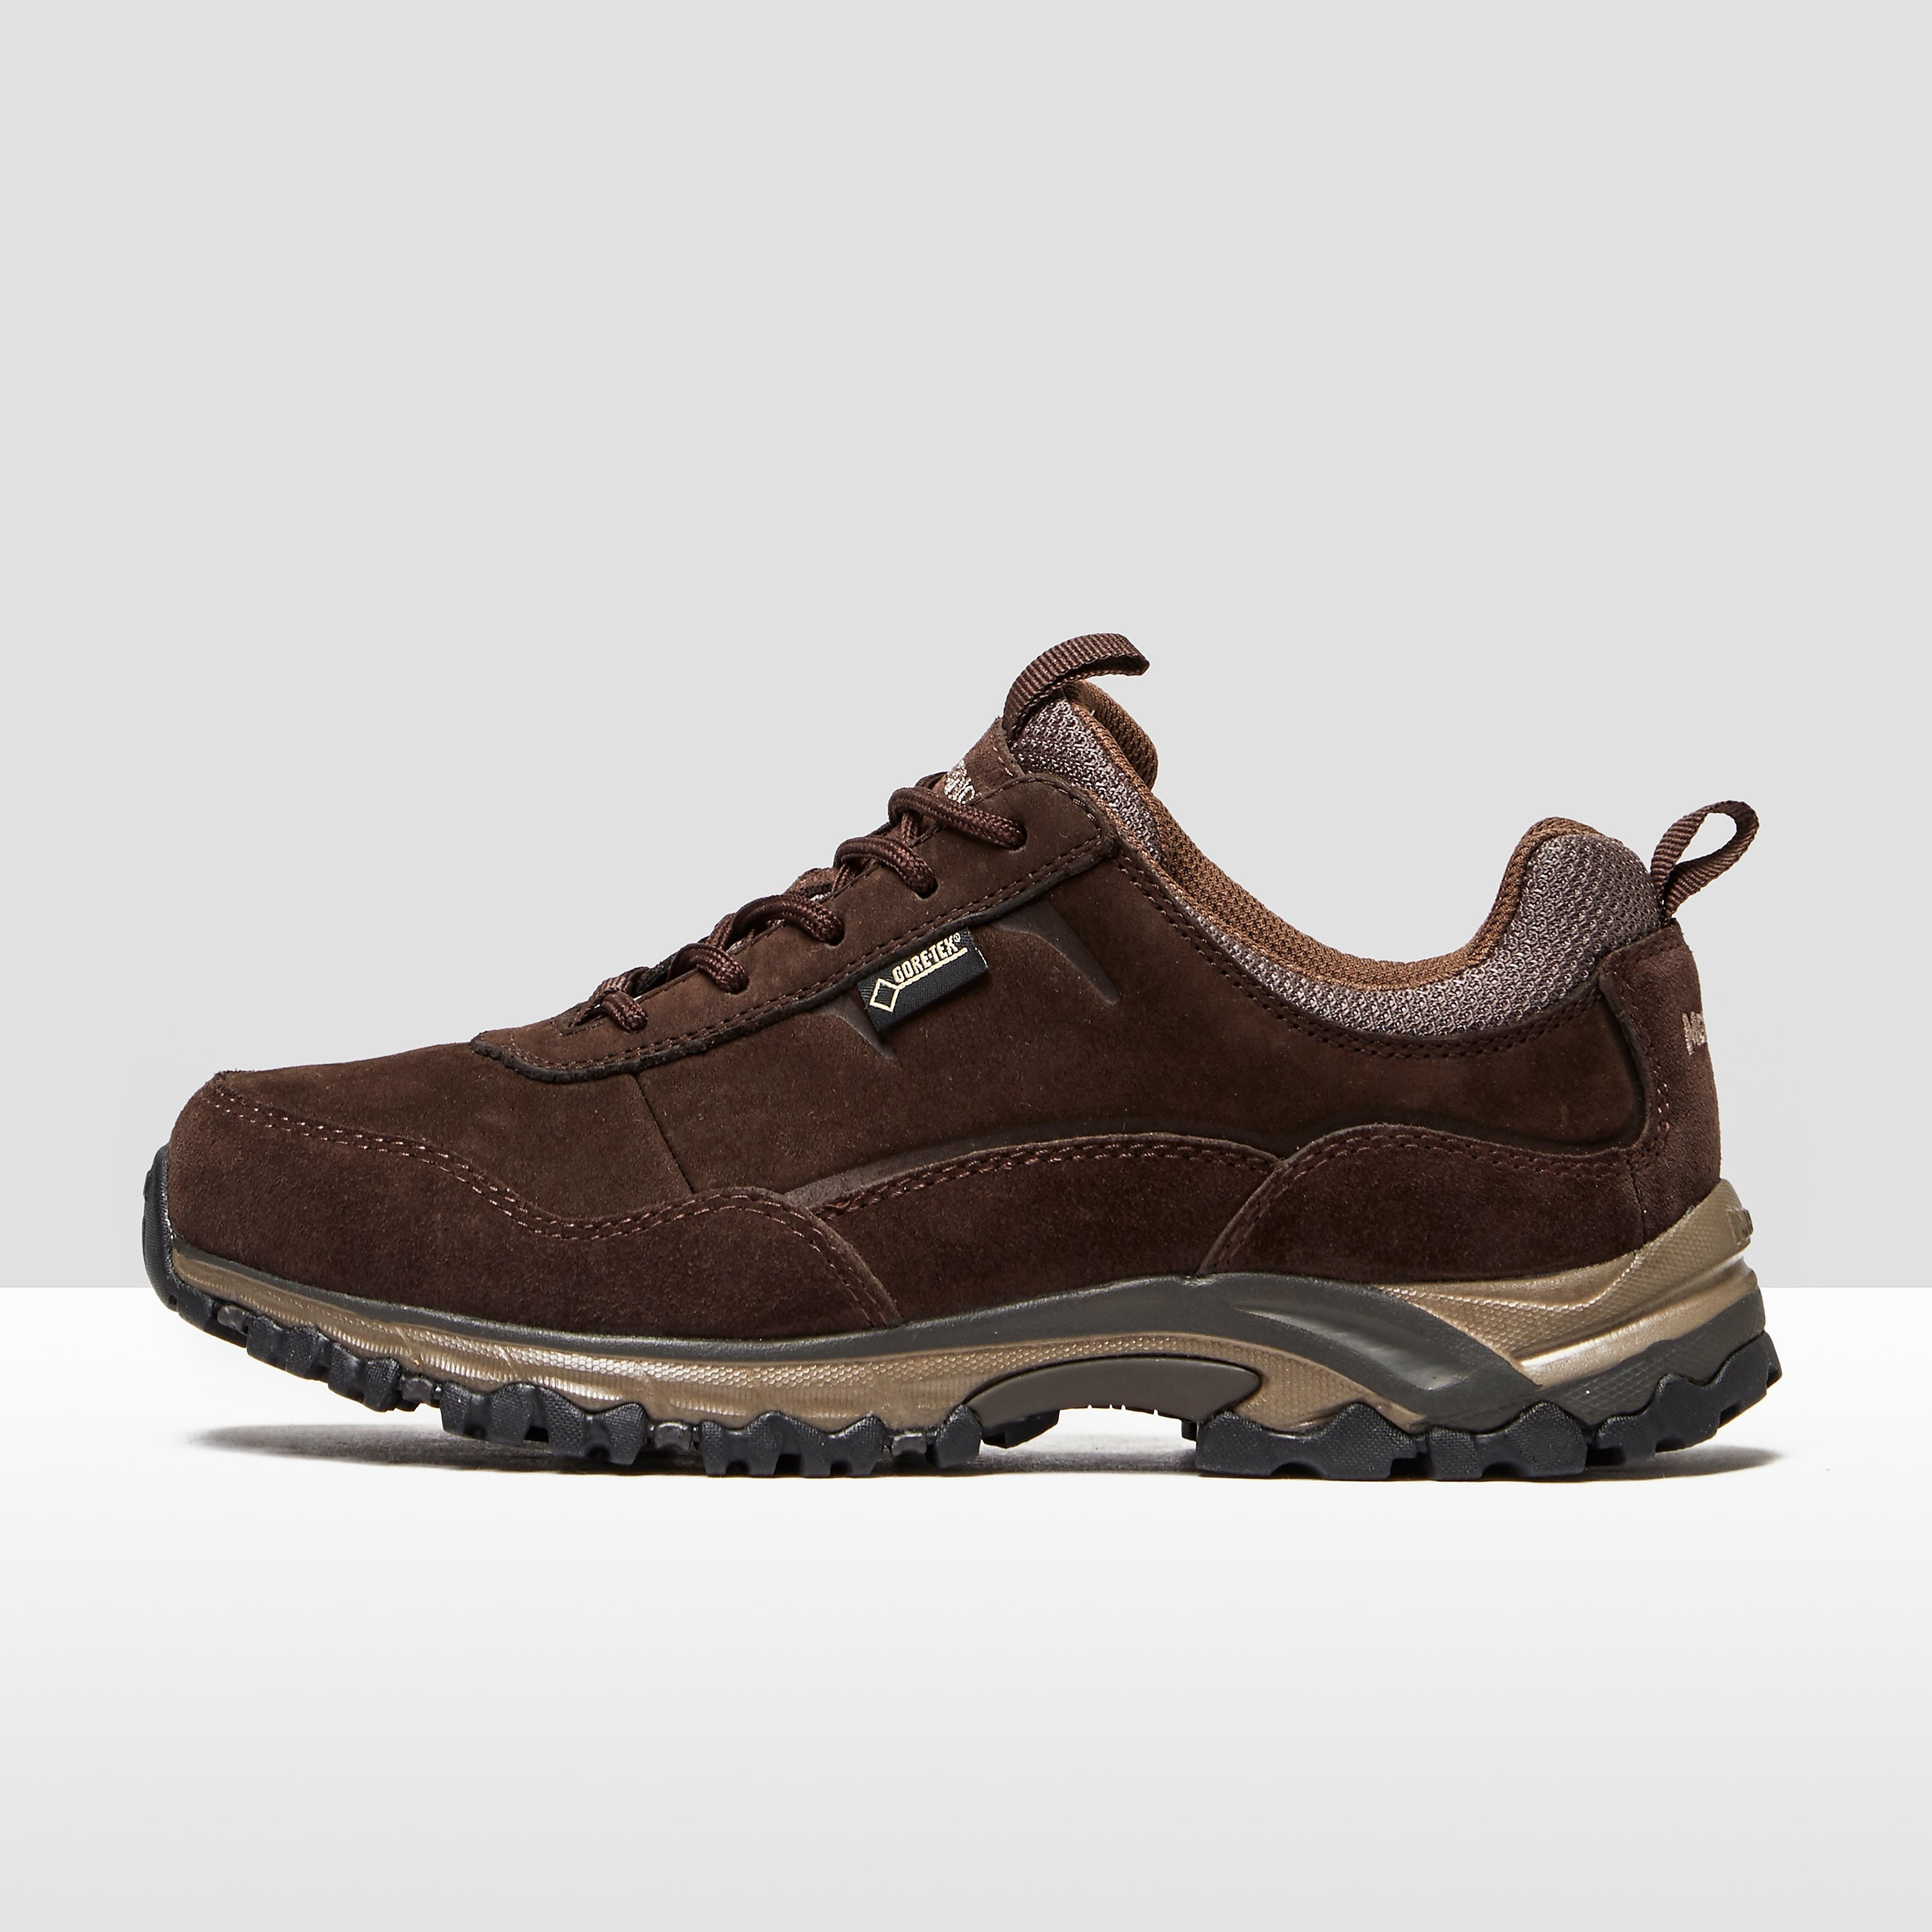 Meindl Cordoba Hiking Shoe